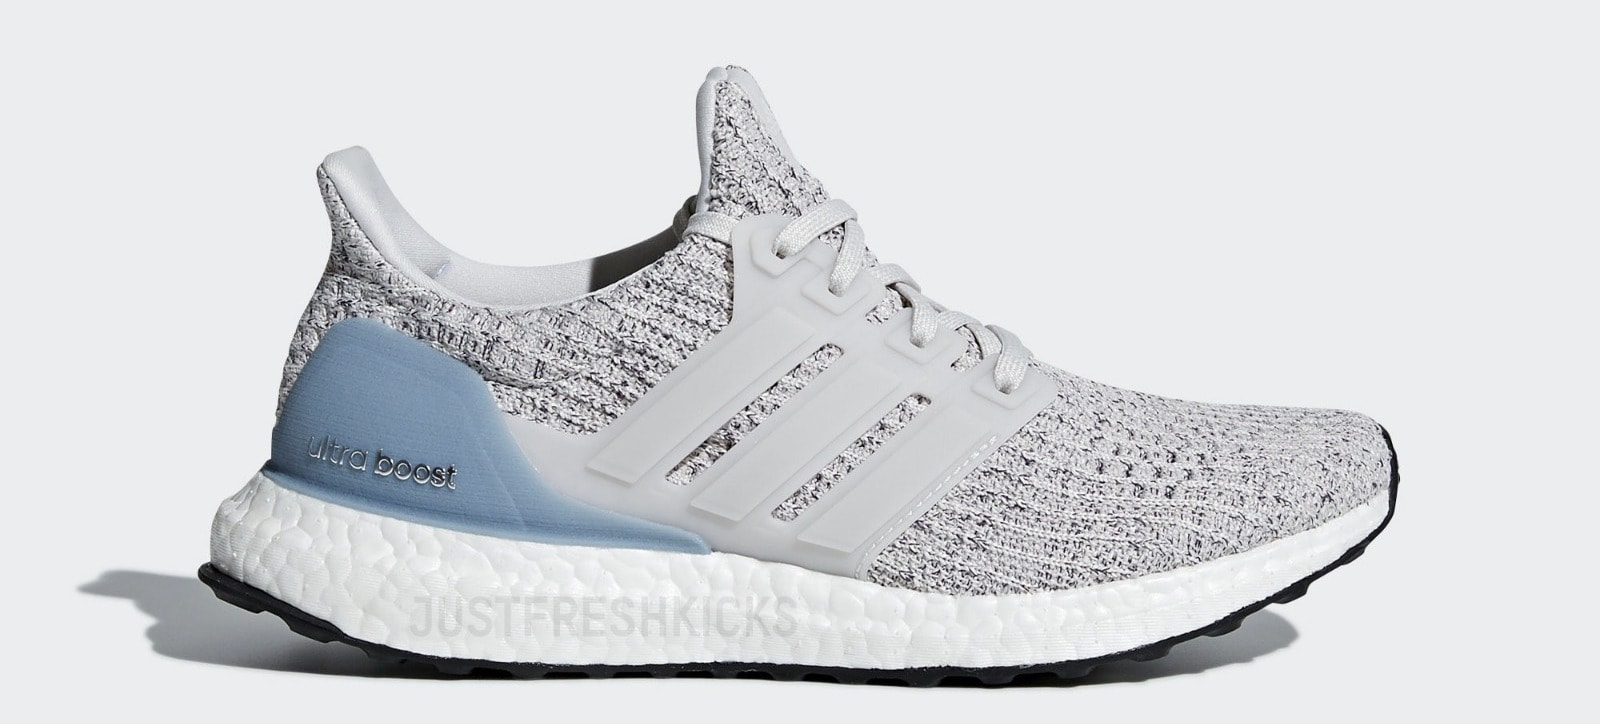 65975d0cd5c adidas is constantly working on new colorways and looks for the Ultra Boost  4.0. With the Spring and Summer months fast approaching